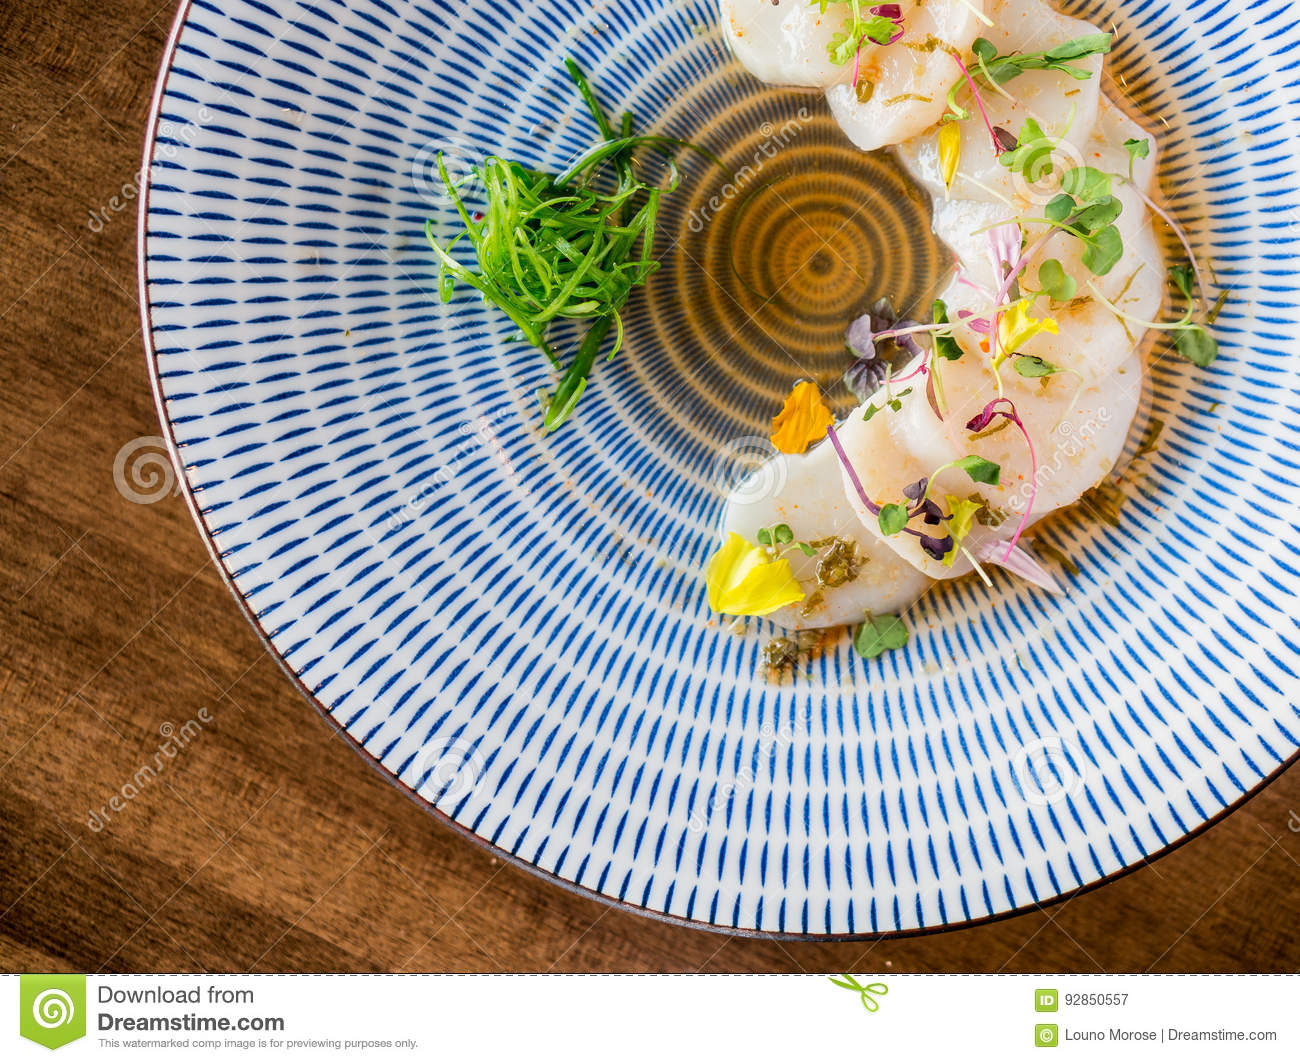 Scallops sashimi from above.